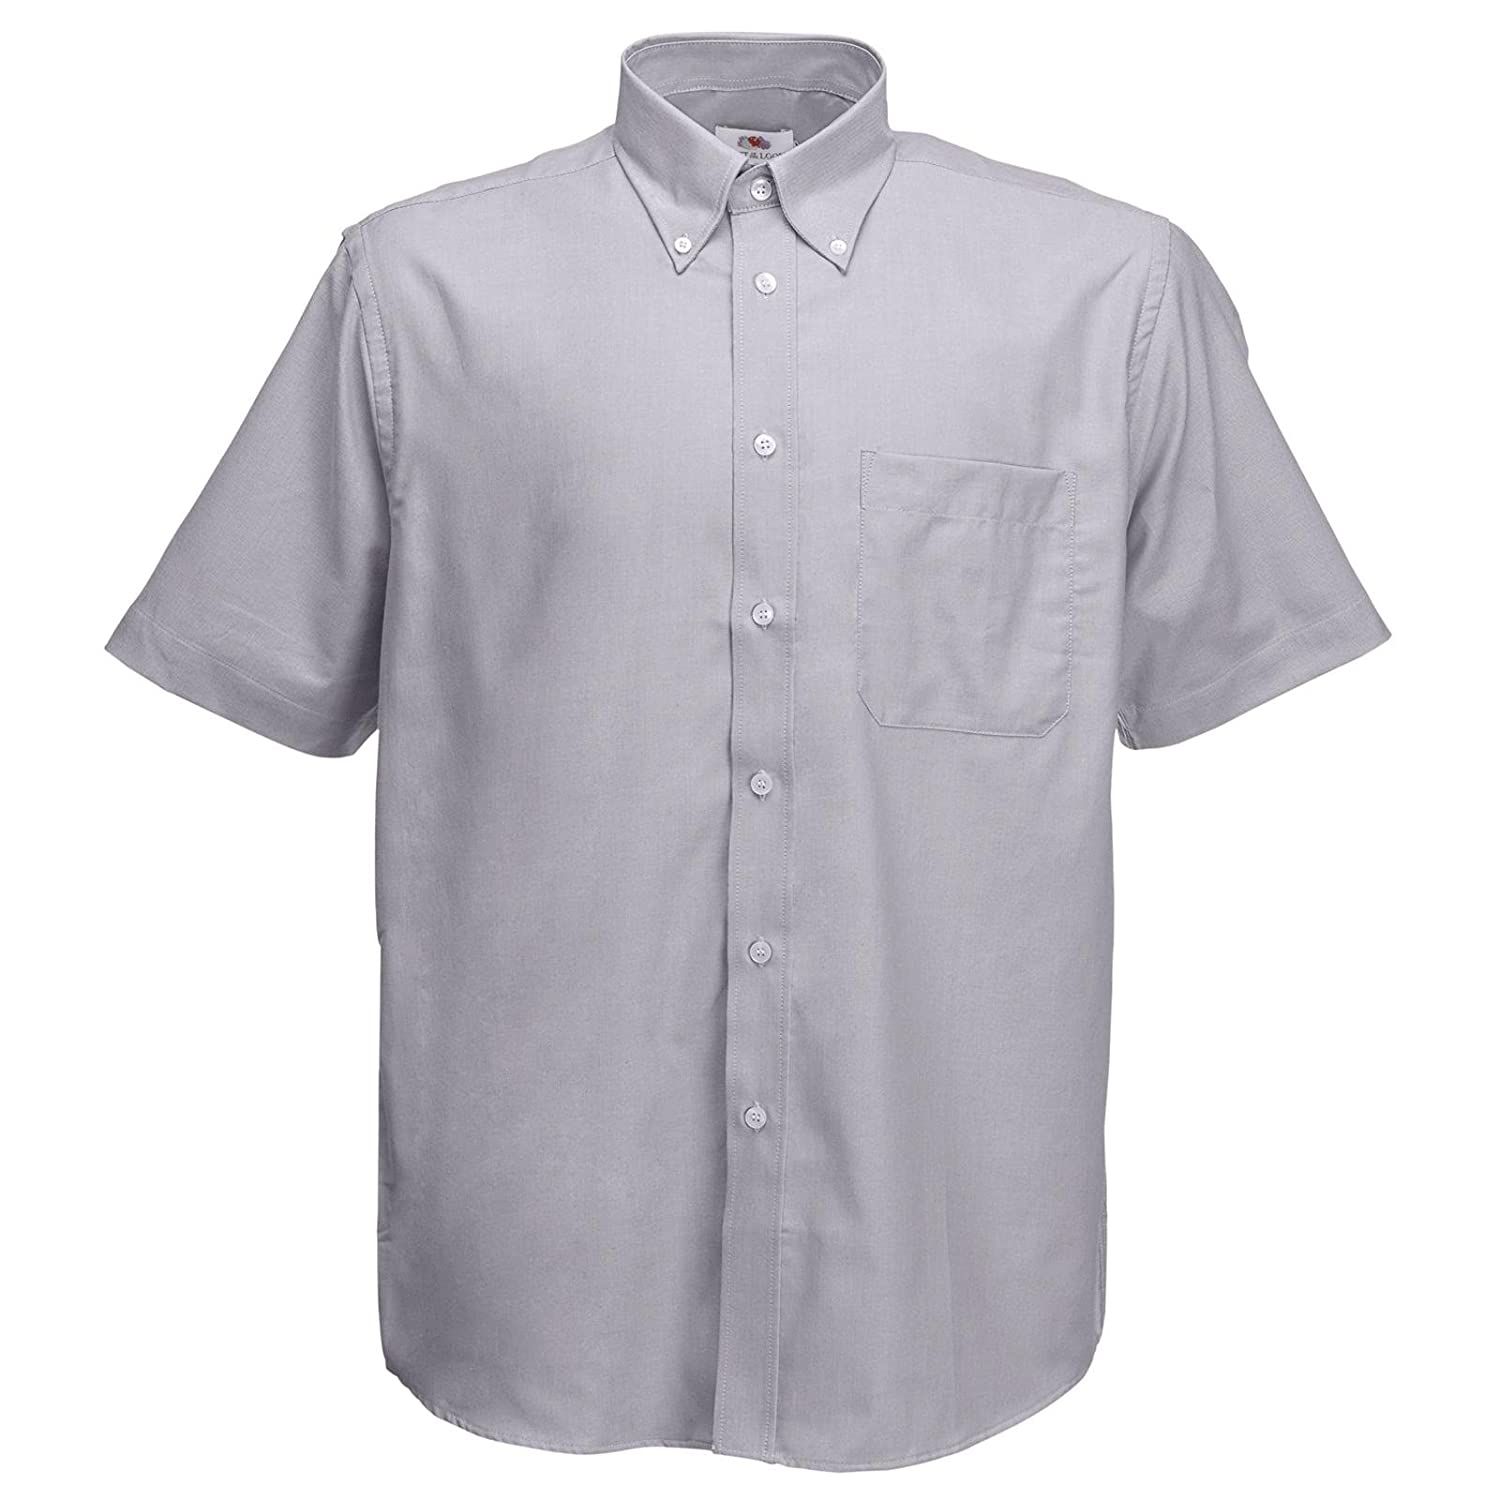 New Fruit of the Loom Mens Oxford Short Sleeve Work Shirt